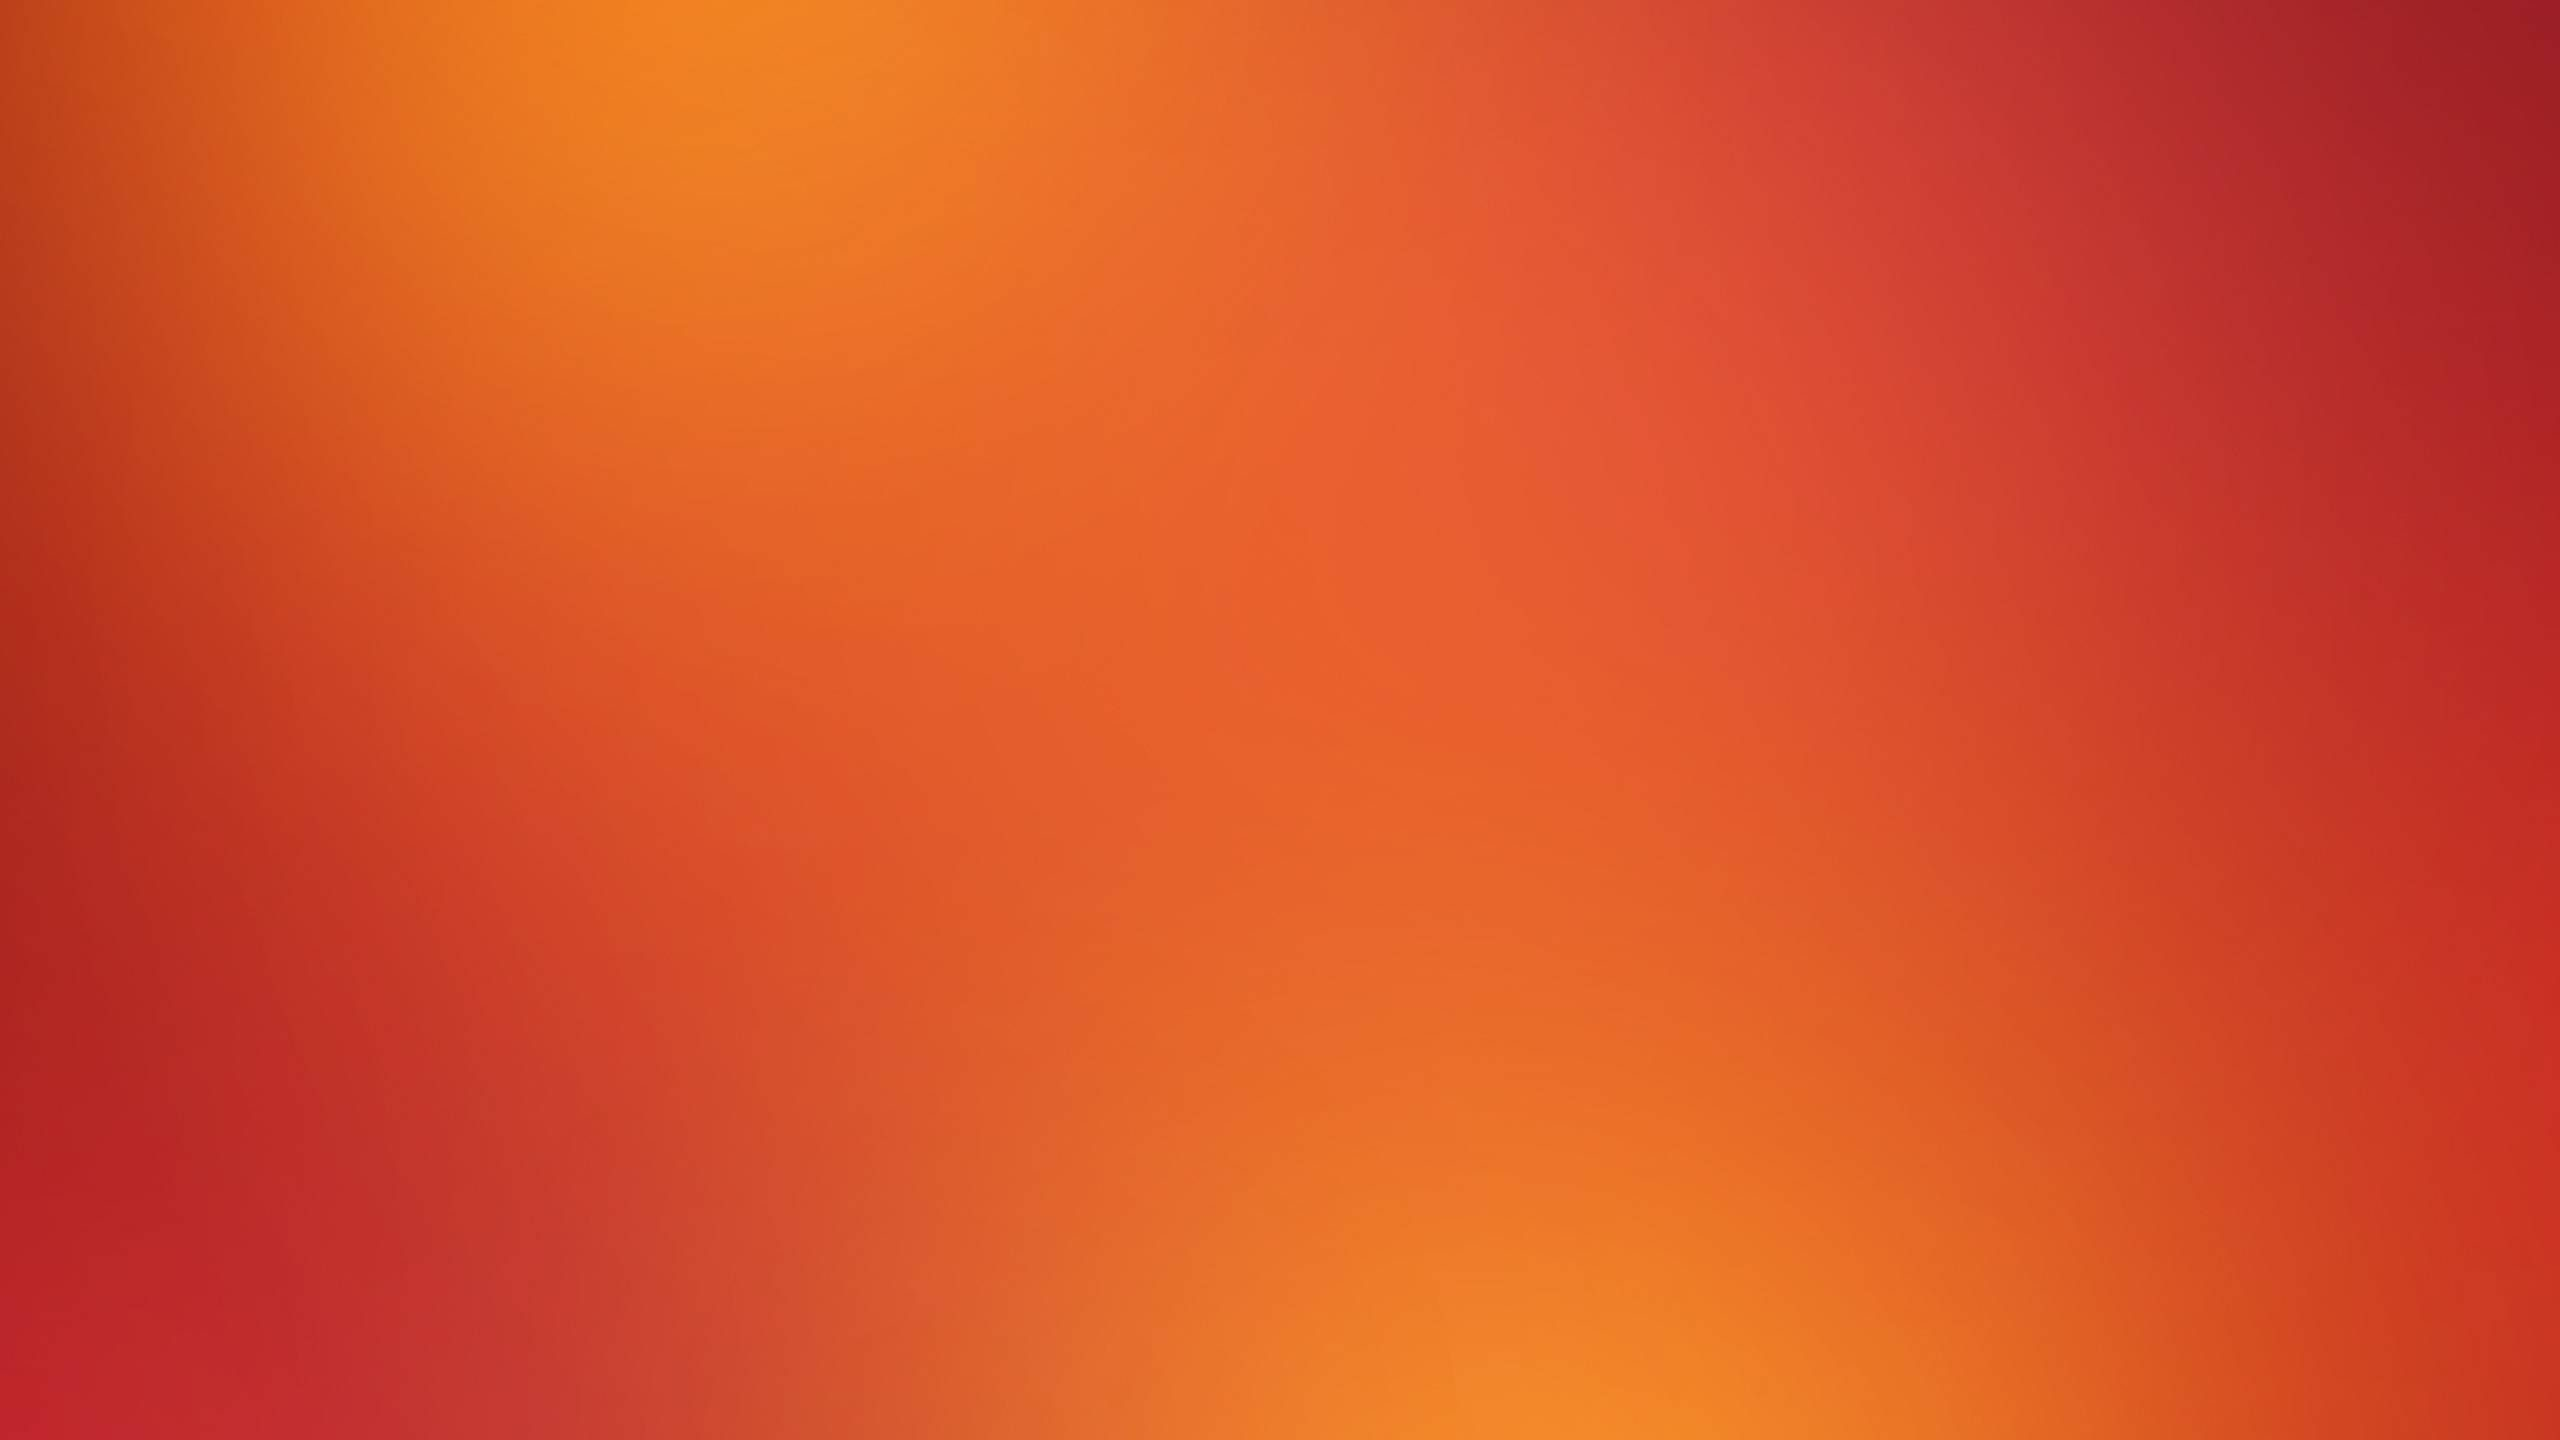 2560x1440 red-yellow-orange-wallpaper.jpg – ReFashionista